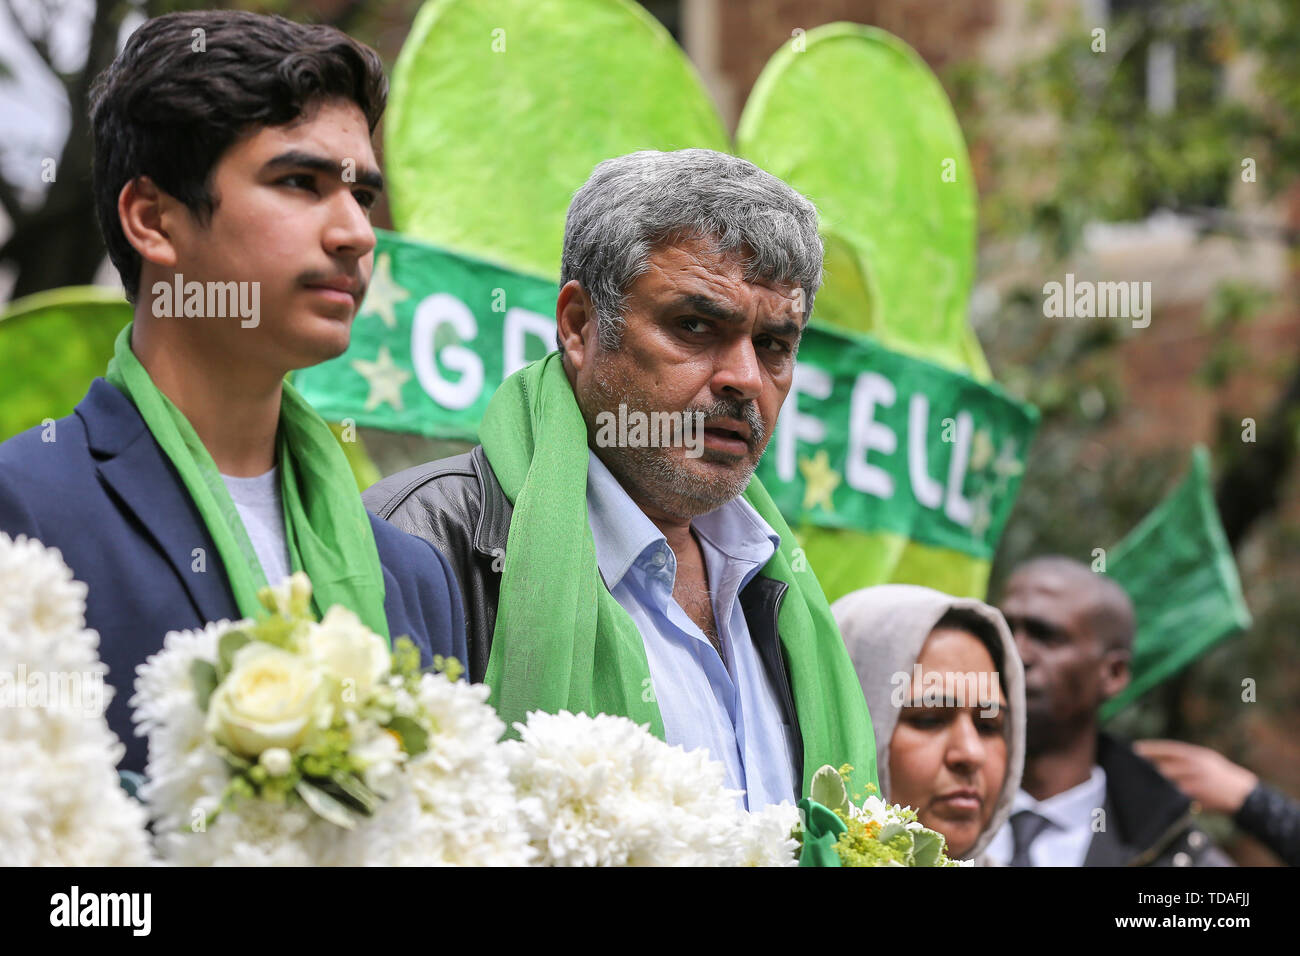 North Kensington, West London. UK 14 Jun 2019 - Survivors, family and friends of the victims wear symbolic green scarf take part in a silent procession marching from St HelenÕs Church to Grenfell Tower to commemorate the second anniversary of the Grenfell Tower fire. On 14 June 2017, just before 1:00Êam a fire broke out in the kitchen of the fourth floor flat at the 24-storey residential tower block in North Kensington, West London, which took the lives of 72 people. More than 70 others were injured and 223 people escaped.  Credit: Dinendra Haria/Alamy Live News - Stock Image